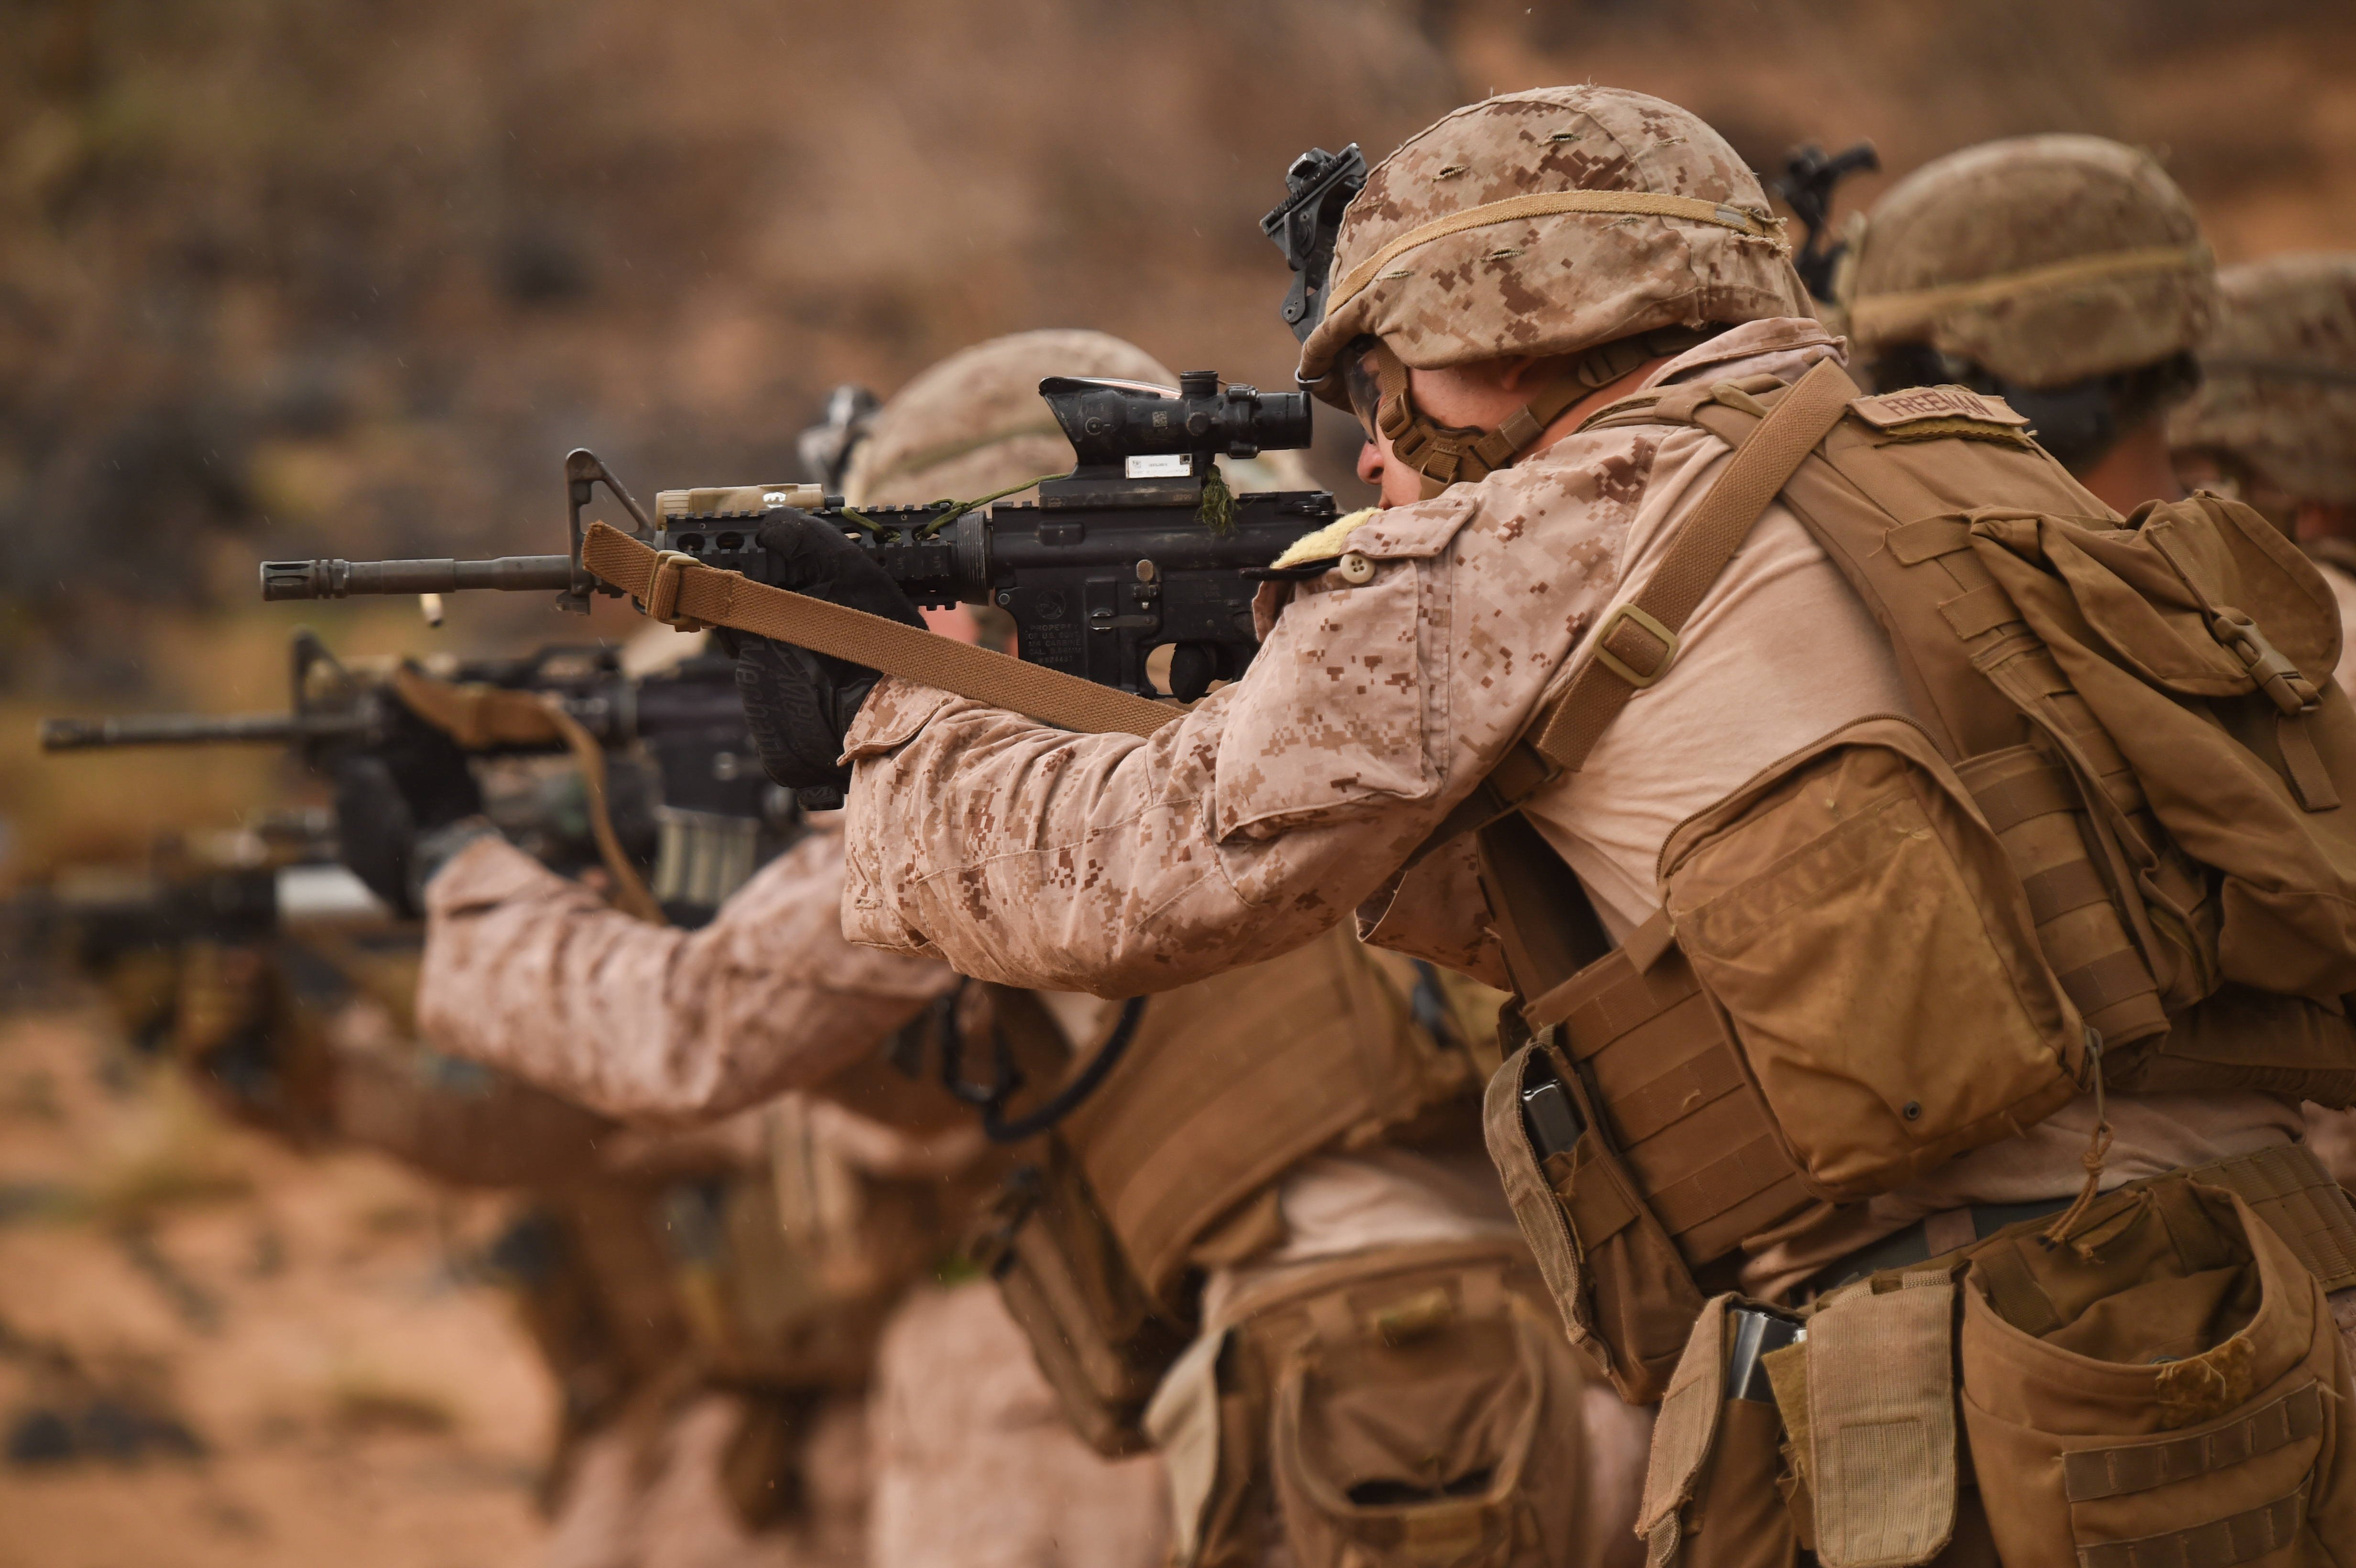 U.S. Marines with Alpha Company, 1st Battalion, 11th Marine Expeditionary Unit (MEU), focus downrange during a Combat Marksmanship Program shoot, Feb. 14, 2017, at Arta Beach in Djibouti. Marines worked on engaging a target while moving and under physical stress. A MEU is a quick response force, which consists of Sailors and Marines on standby for immediate crisis response across the globe. (U.S. Air National Guard photo by Staff Sgt. Penny Snoozy)